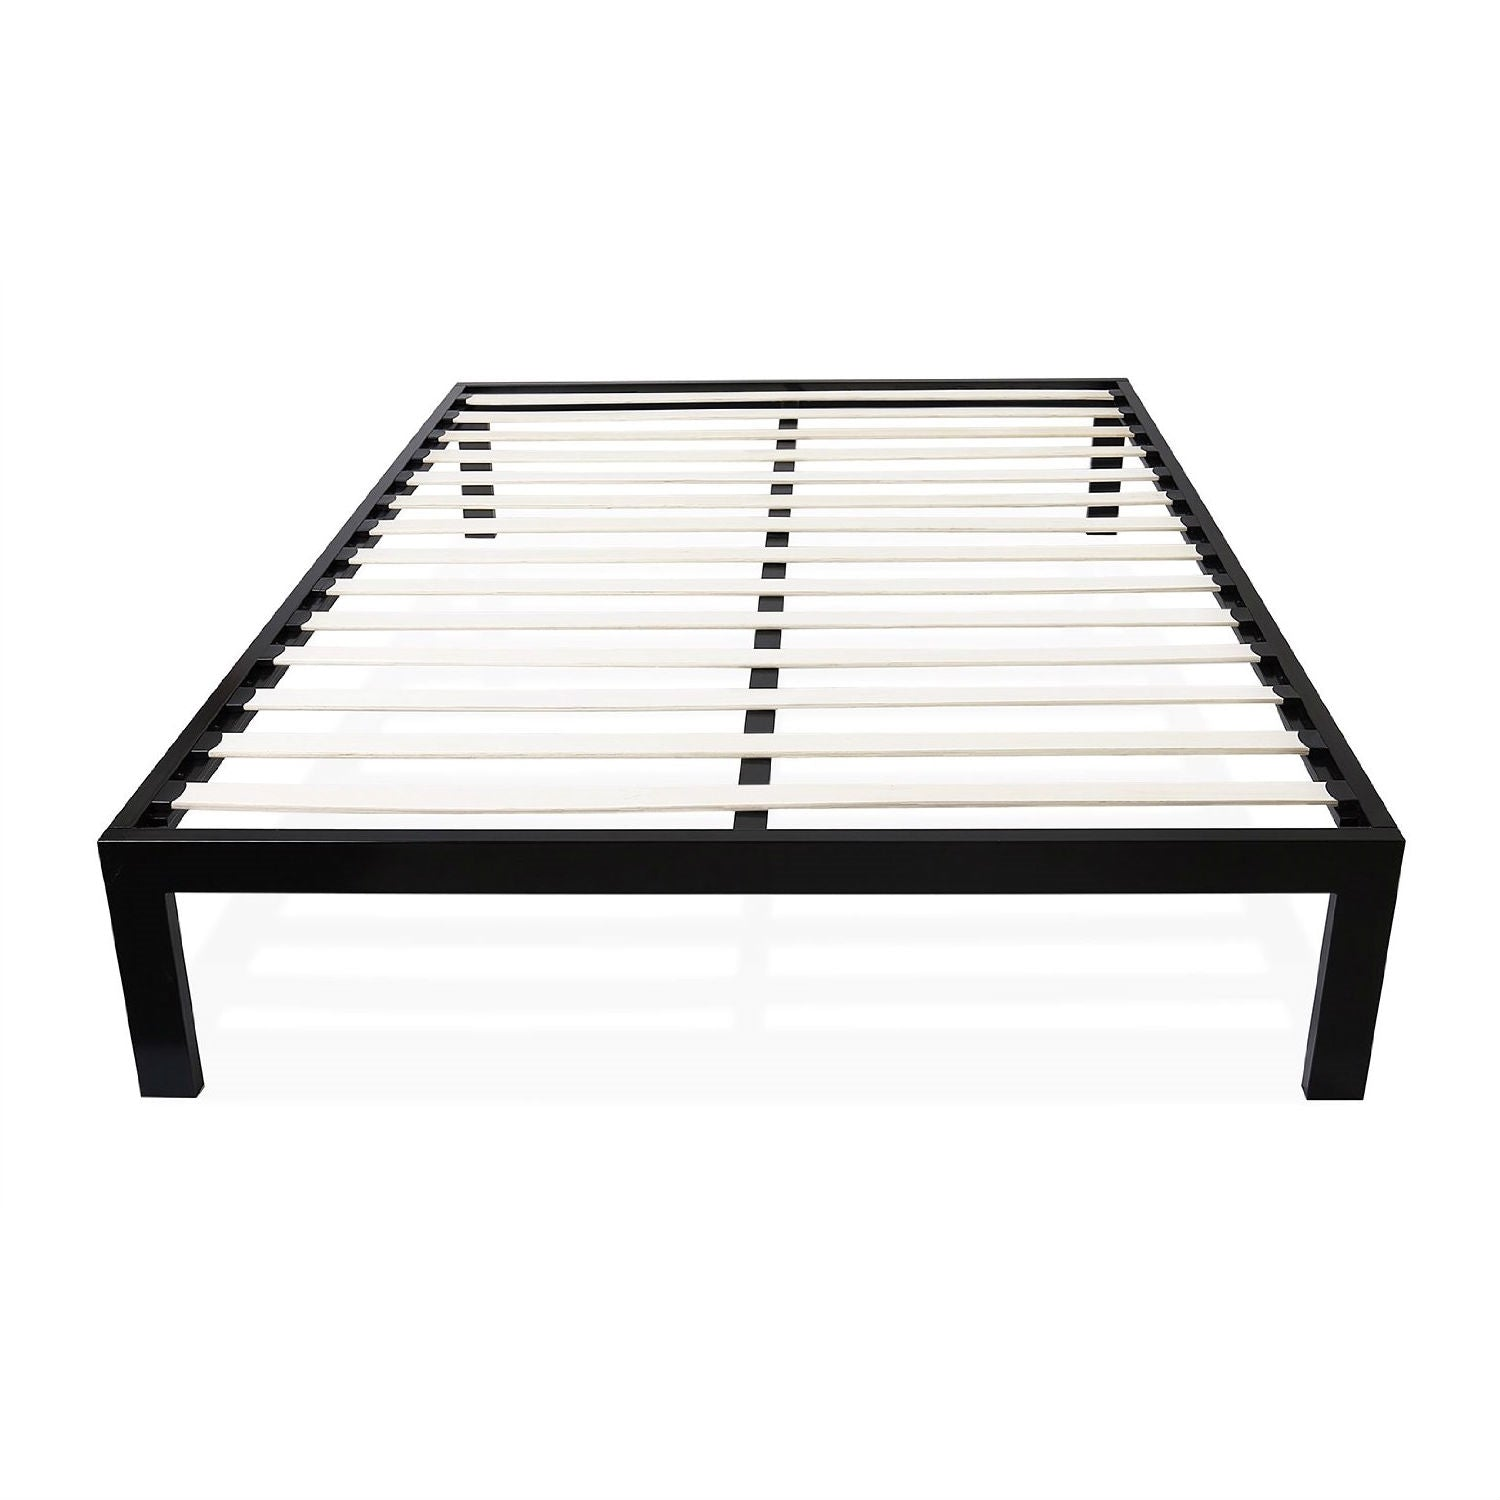 Full size Simple Black Metal Bed Frame Platform with Wooden Slats